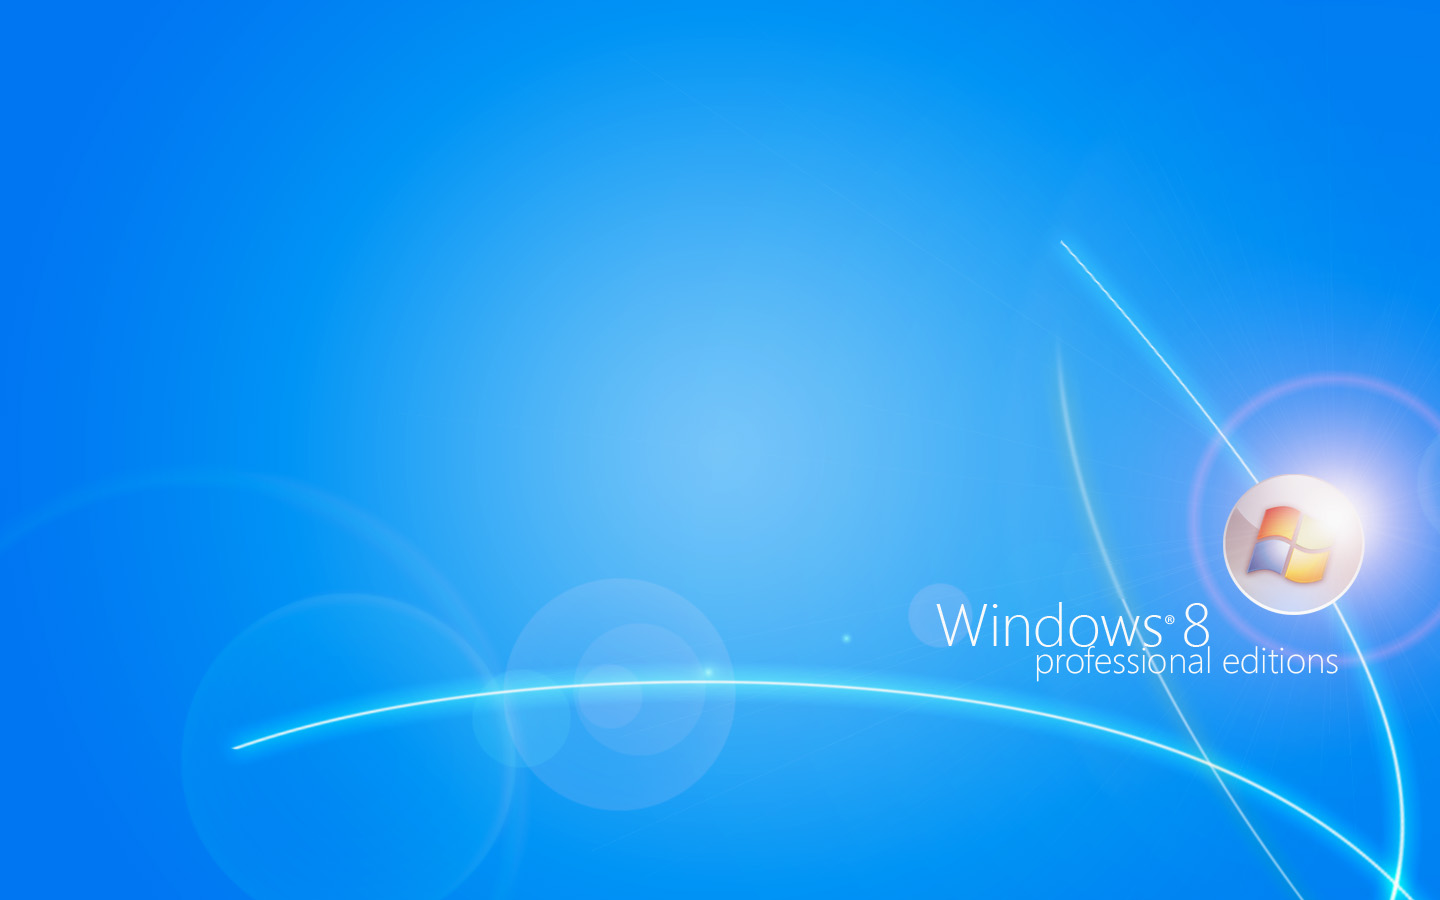 Cool Free Windows  Wallpapers  Webdesign Core 1440x900